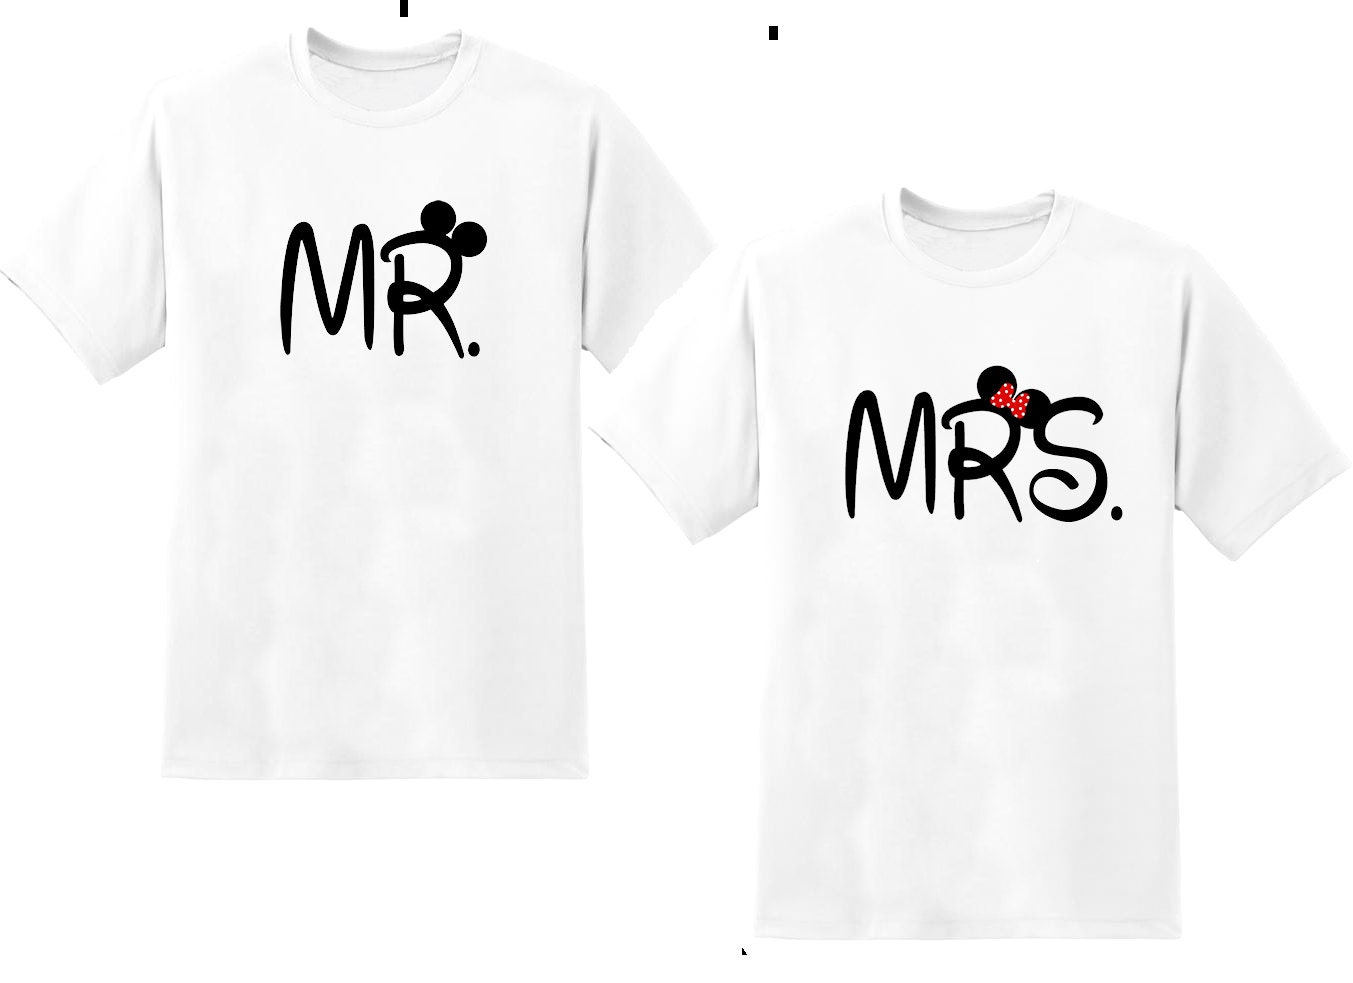 King And Queen With Crowns further Getting Married My Friend Are Just Getting Drunk likewise 365636063475856811 moreover Mr And Mrs T Shirts In Disney Font Mr besides Viewtopic. on just married t shirts